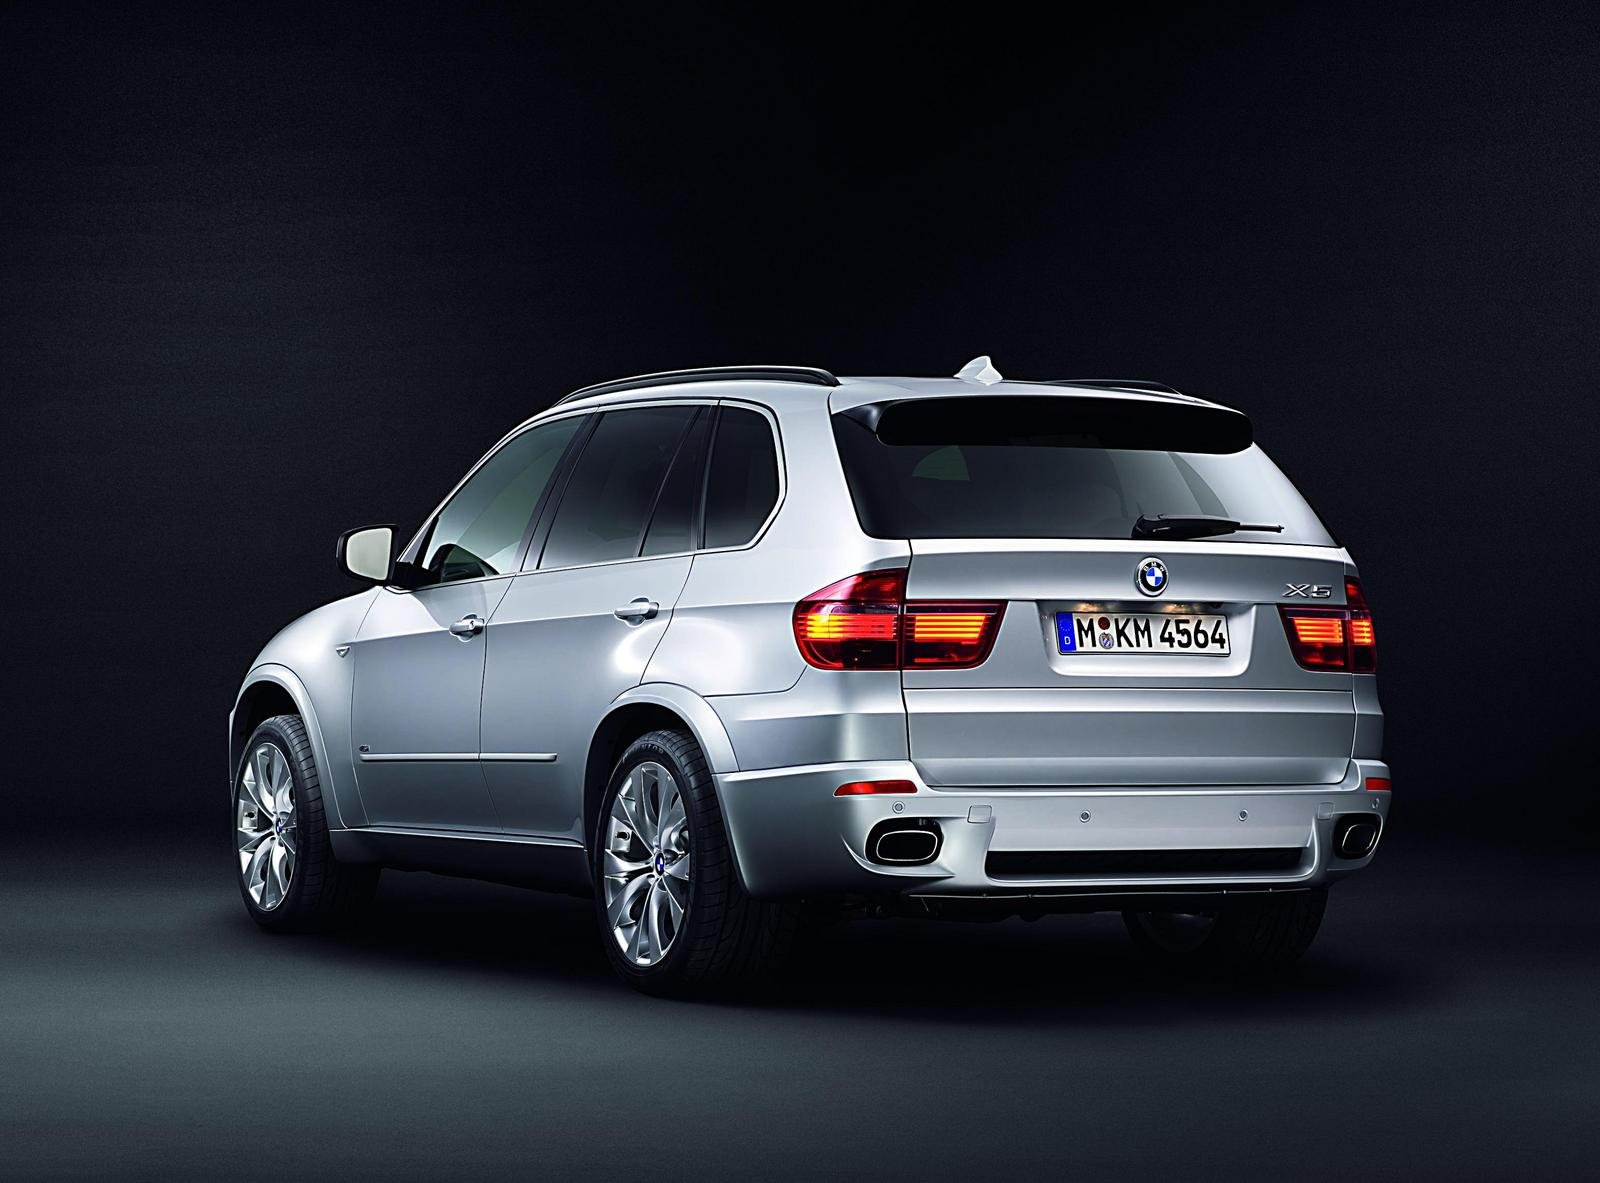 2007 bmw x5 m sport package picture 174268 car review top speed. Black Bedroom Furniture Sets. Home Design Ideas